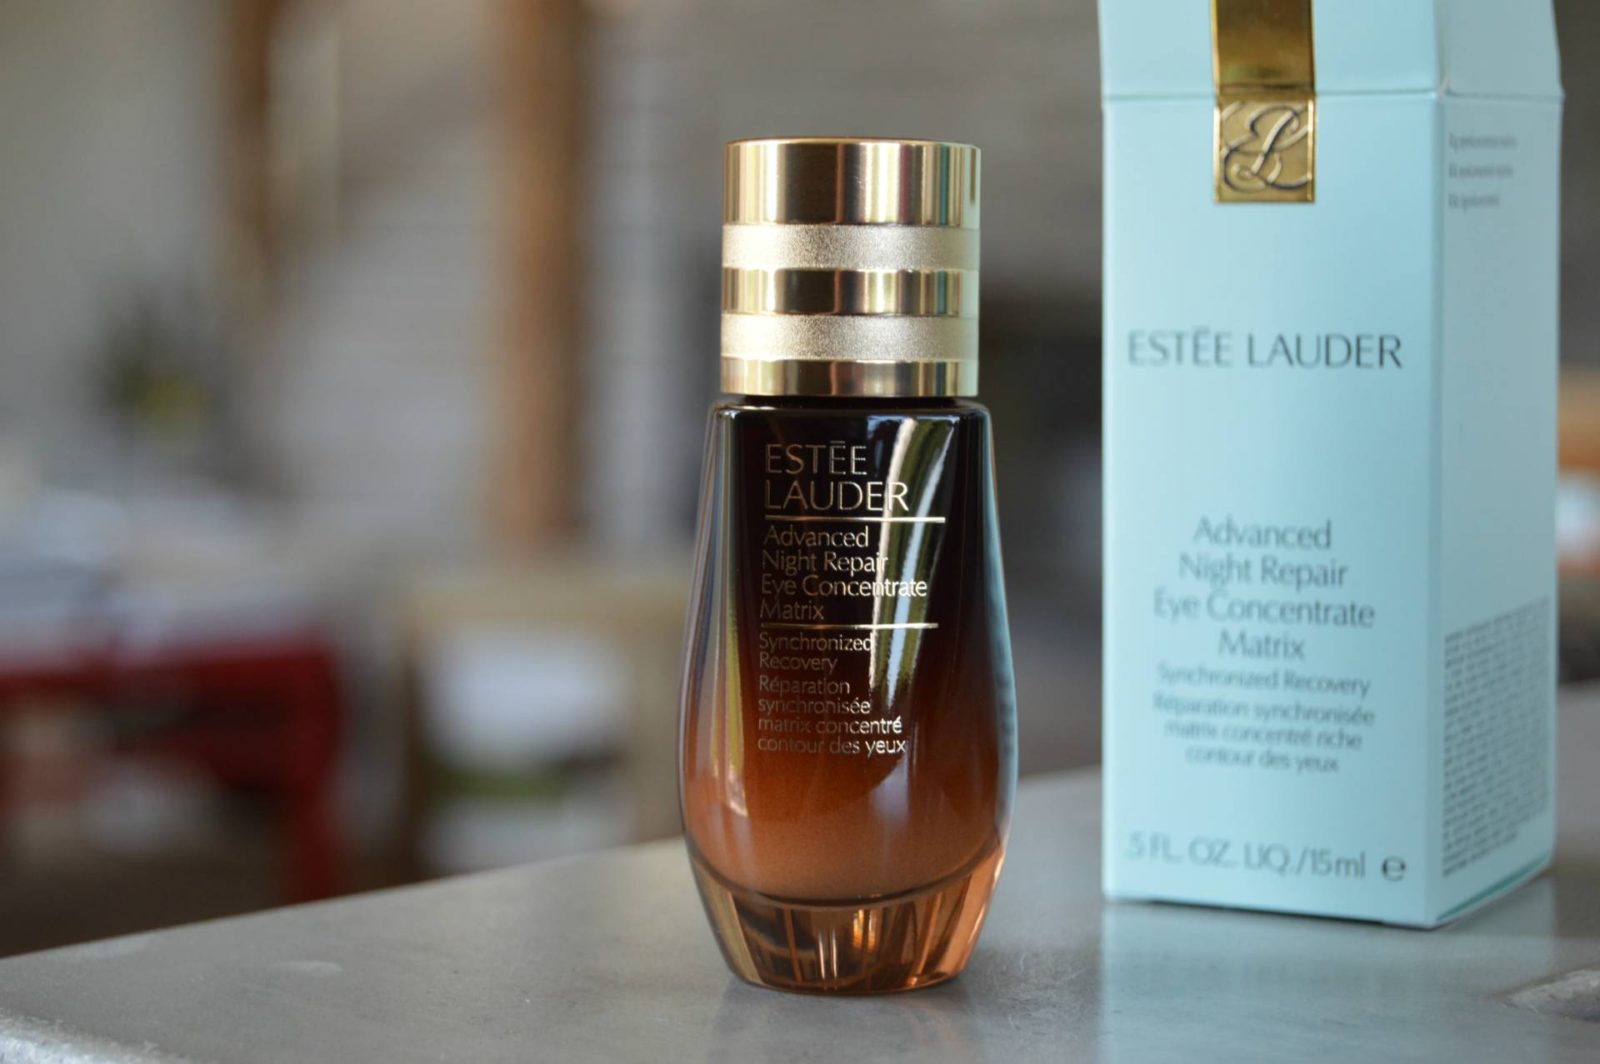 Estée Lauder ANR Eye Concentrate Matrix